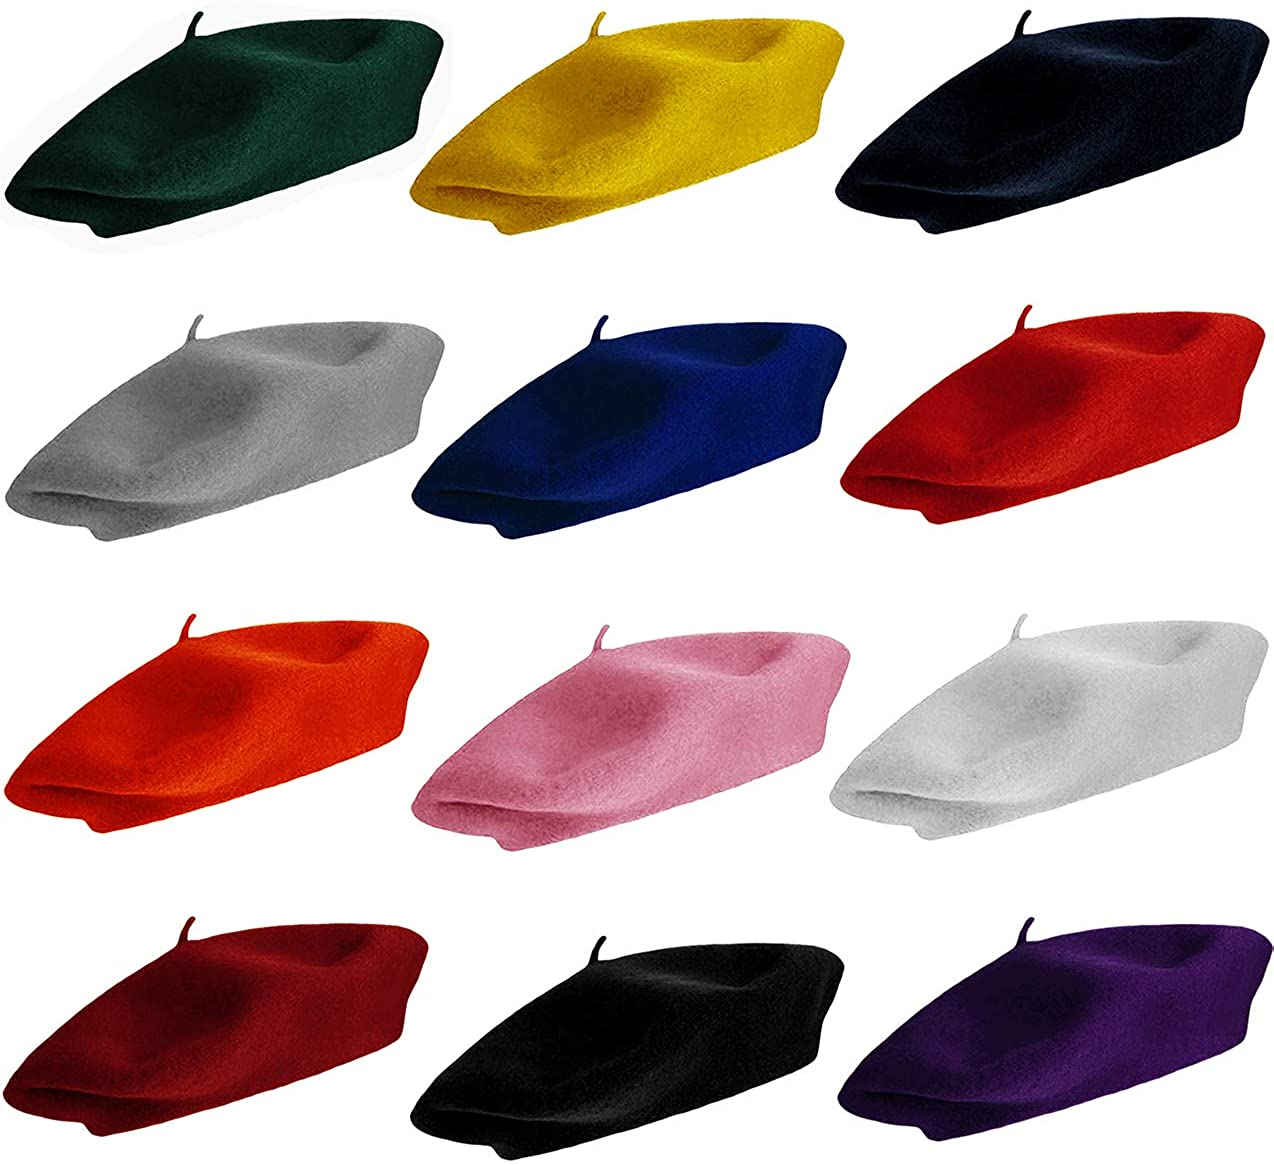 Wool Berets for Adults - French Beret - Artist Hat - Pack by CoverYourHair